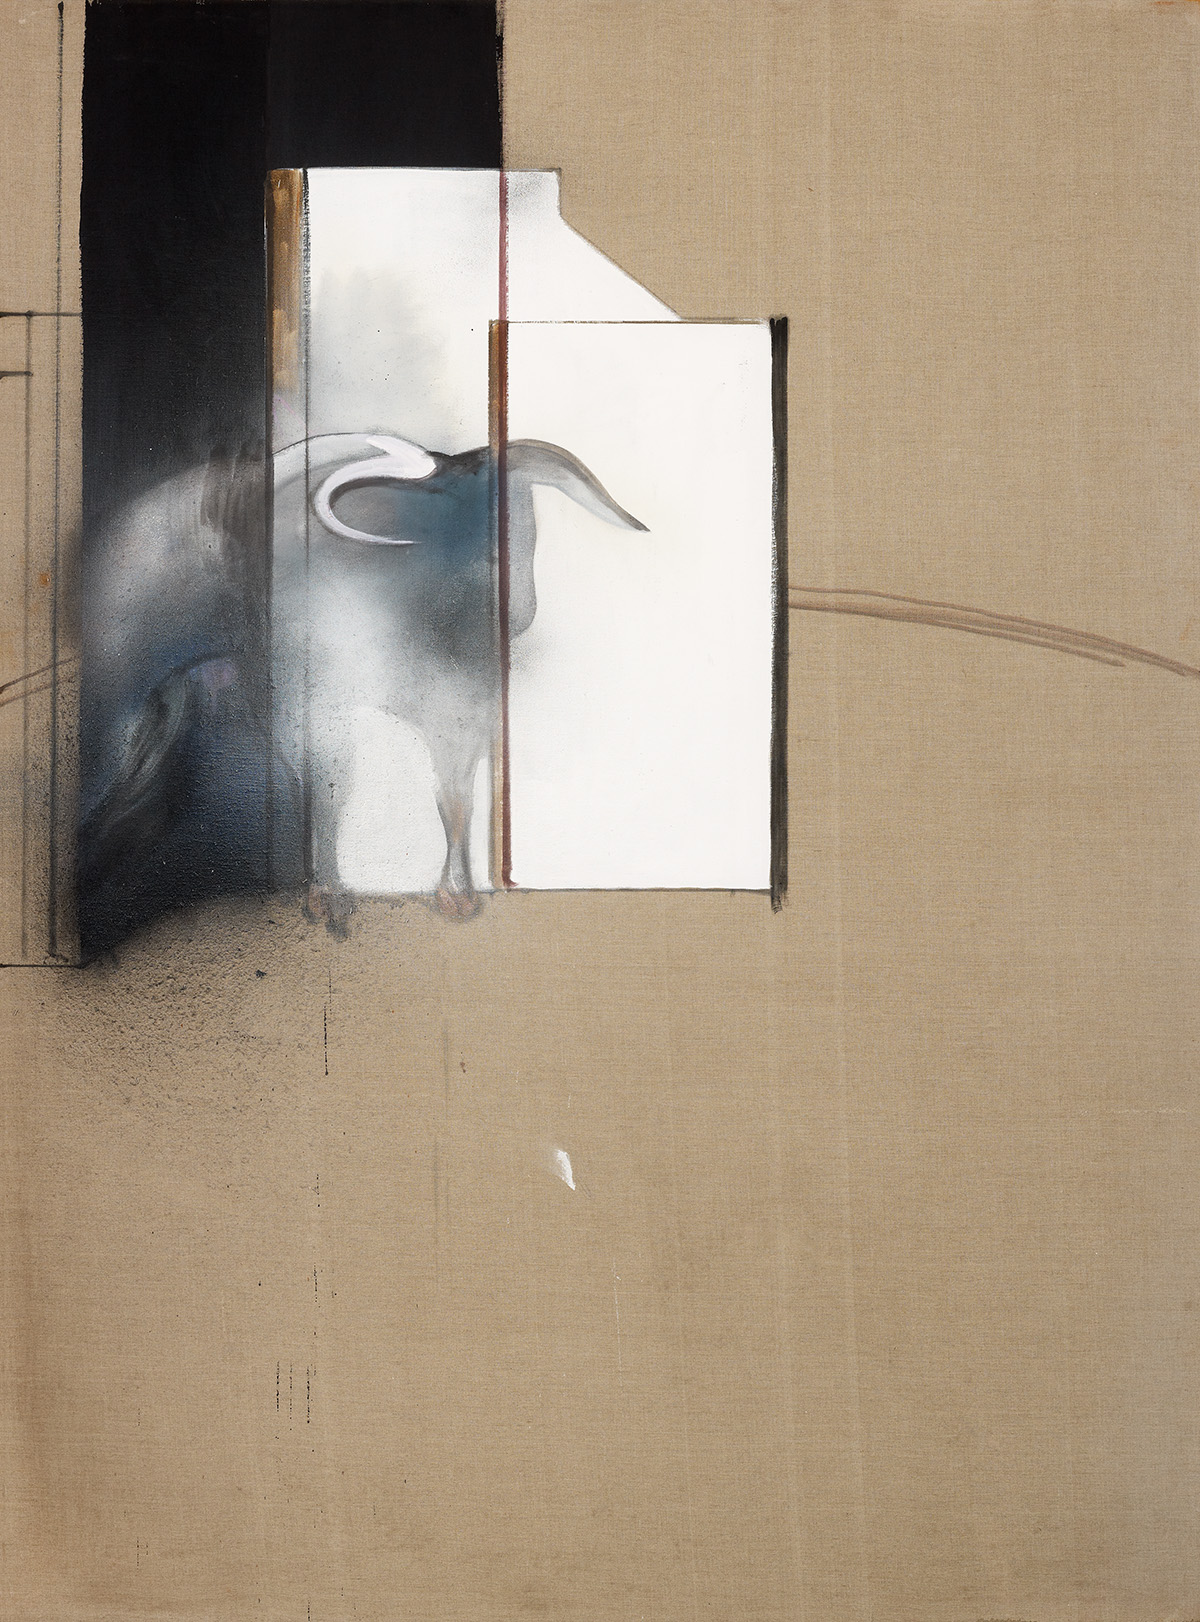 Francis Bacon, Study of a Bull, 1991. Oil, aerosol paint and dust on canvas. CR number 91-04. © The Estate of Francis Bacon / DACS London 2020. All rights reserved.